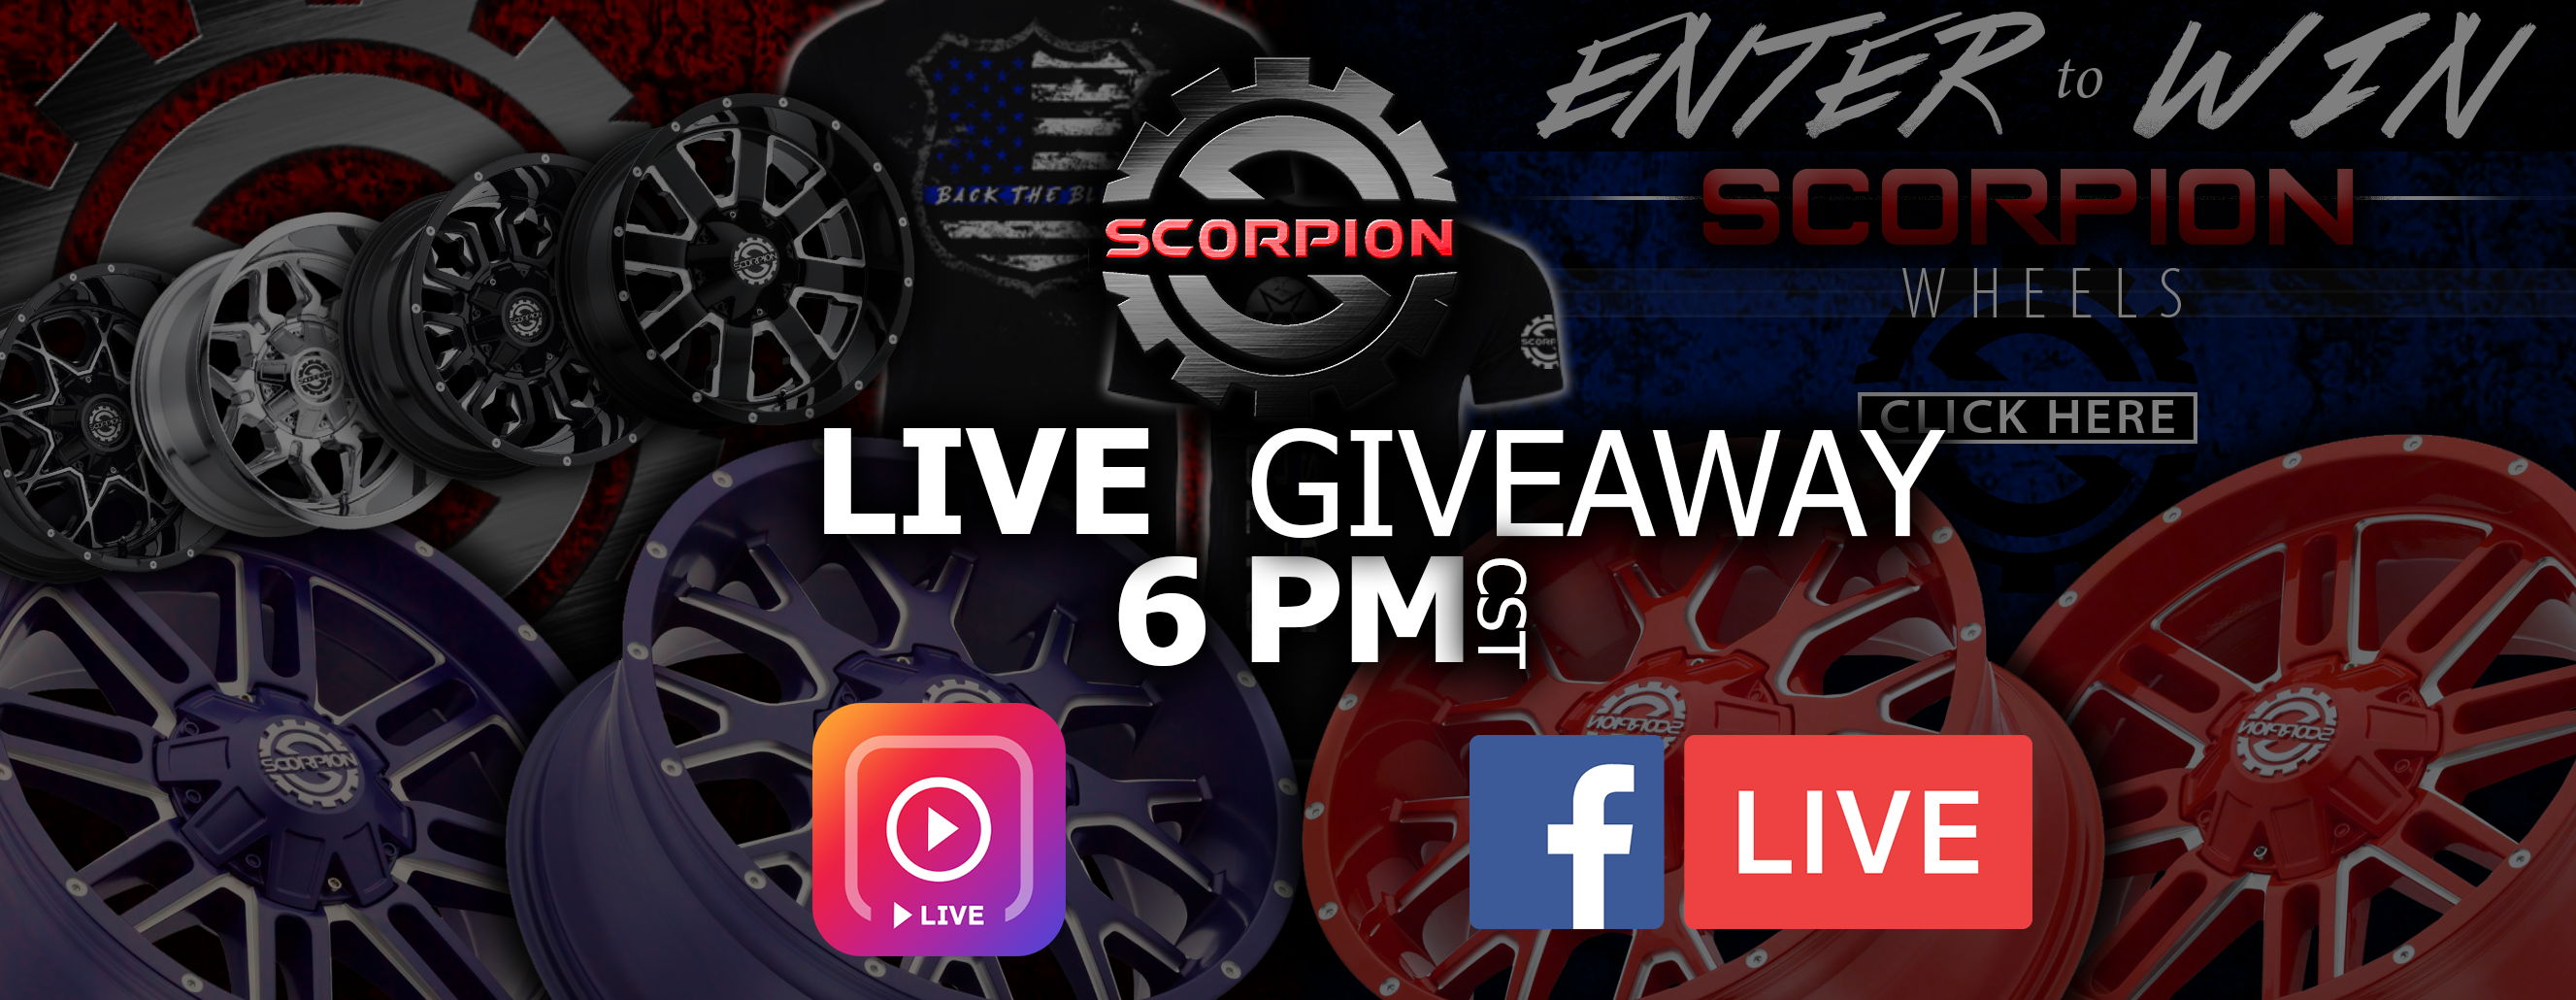 Scorpion Giveaway